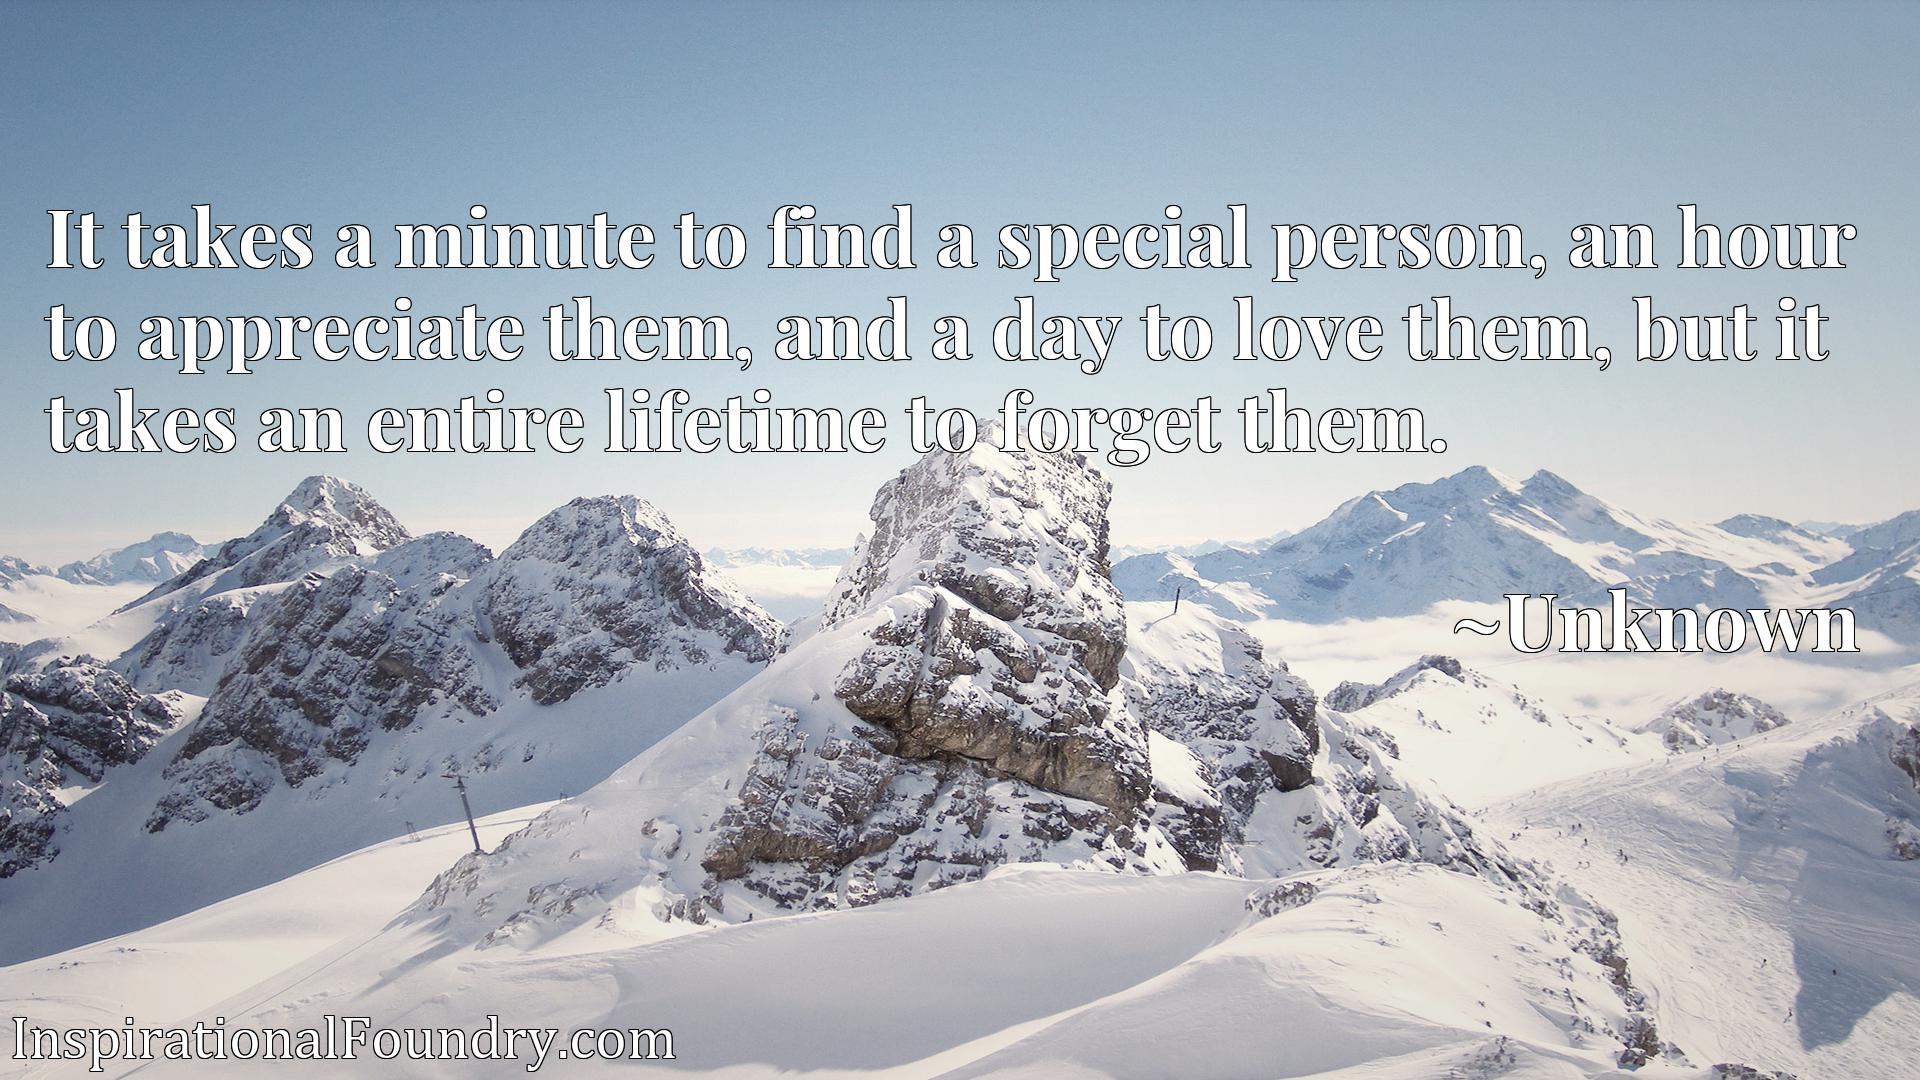 It takes a minute to find a special person, an hour to appreciate them, and a day to love them, but it takes an entire lifetime to forget them.